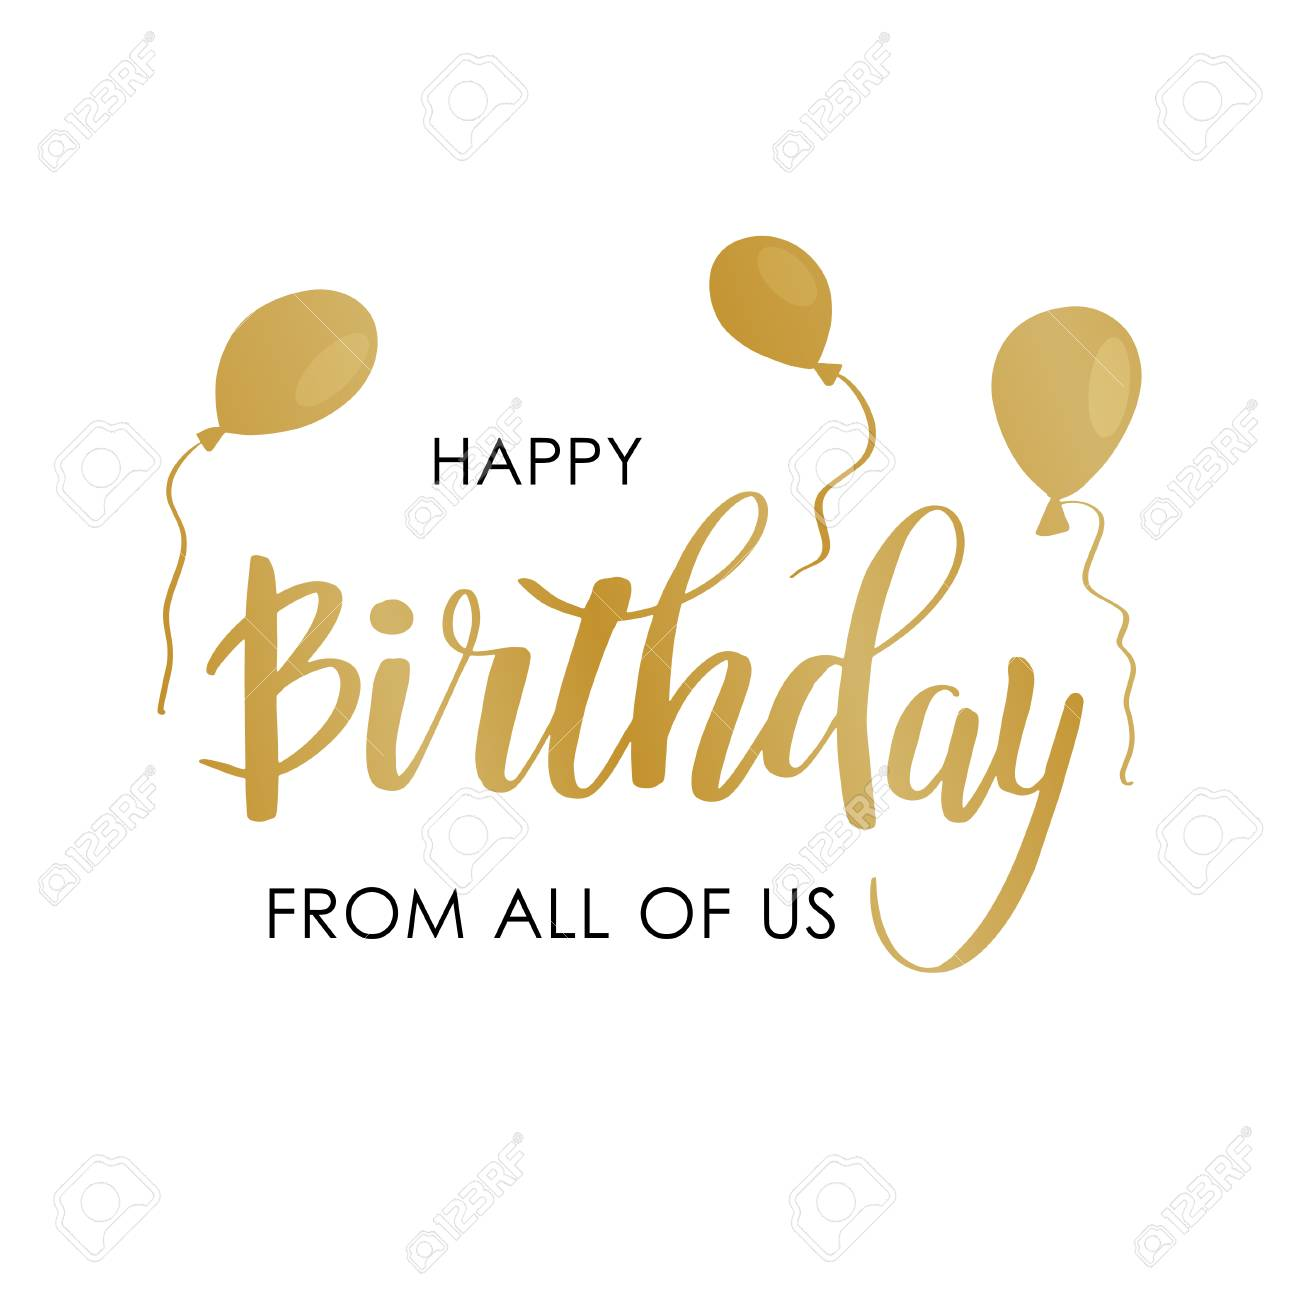 Happy Birthday Greeting Card With Lettering Design Calligraphy Text From All Of Us